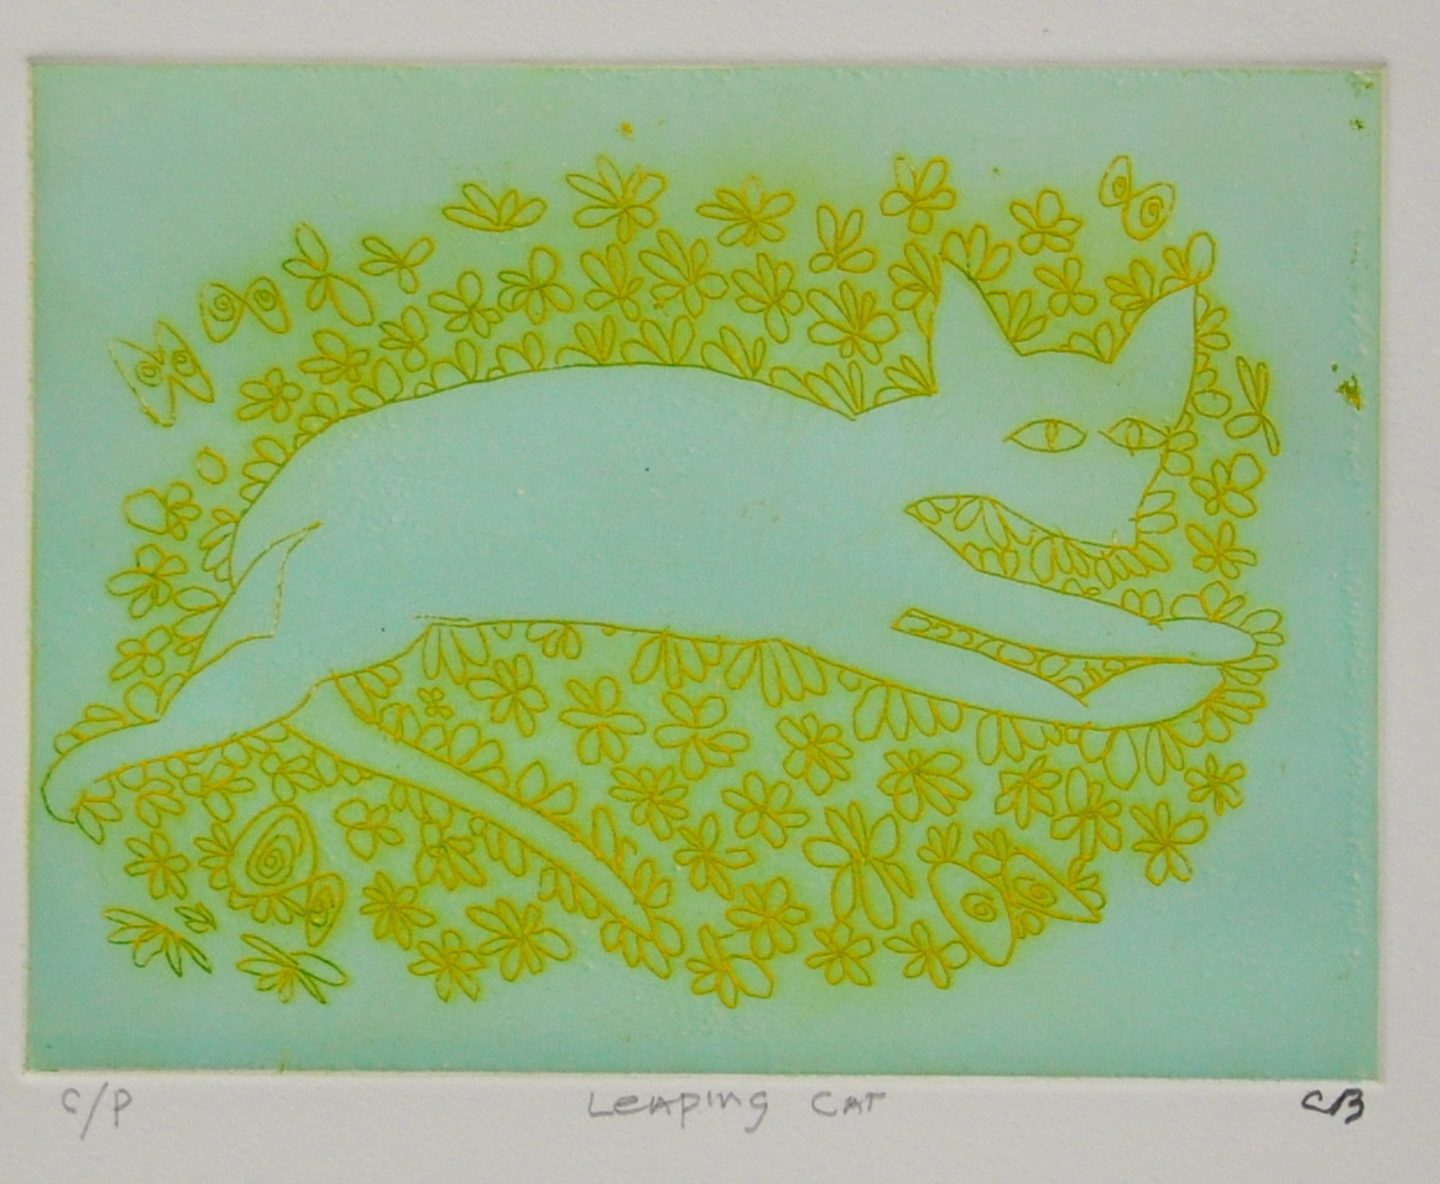 Leaping Cat (colour proof)